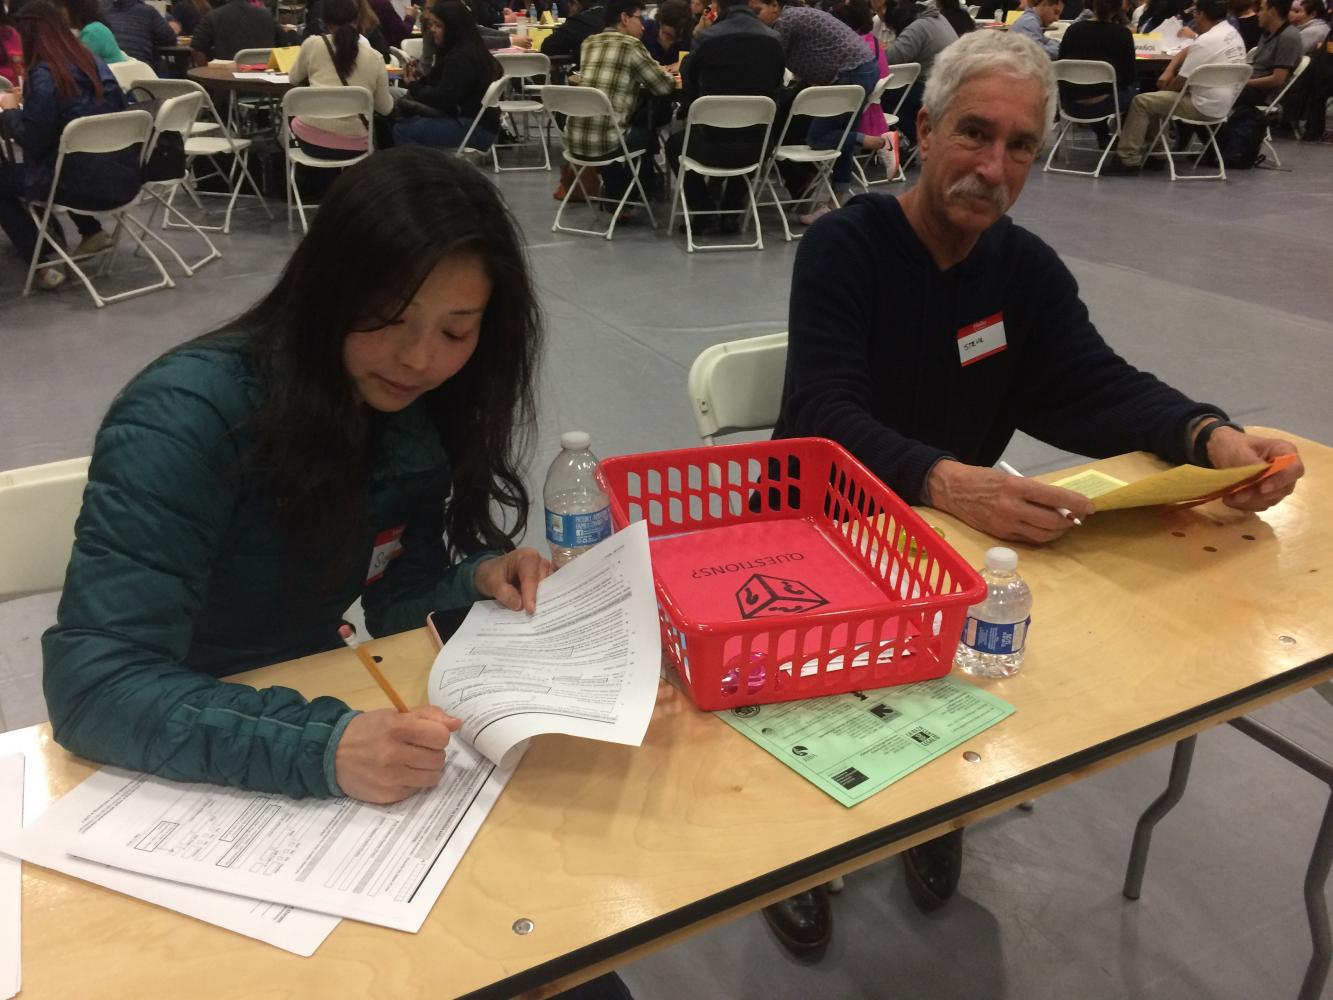 Immigration Workshop volunteers (left) Susan Jang and Steve Ravel help attendees fill out citizenship applications in the SJCC gym, Saturday April 22.